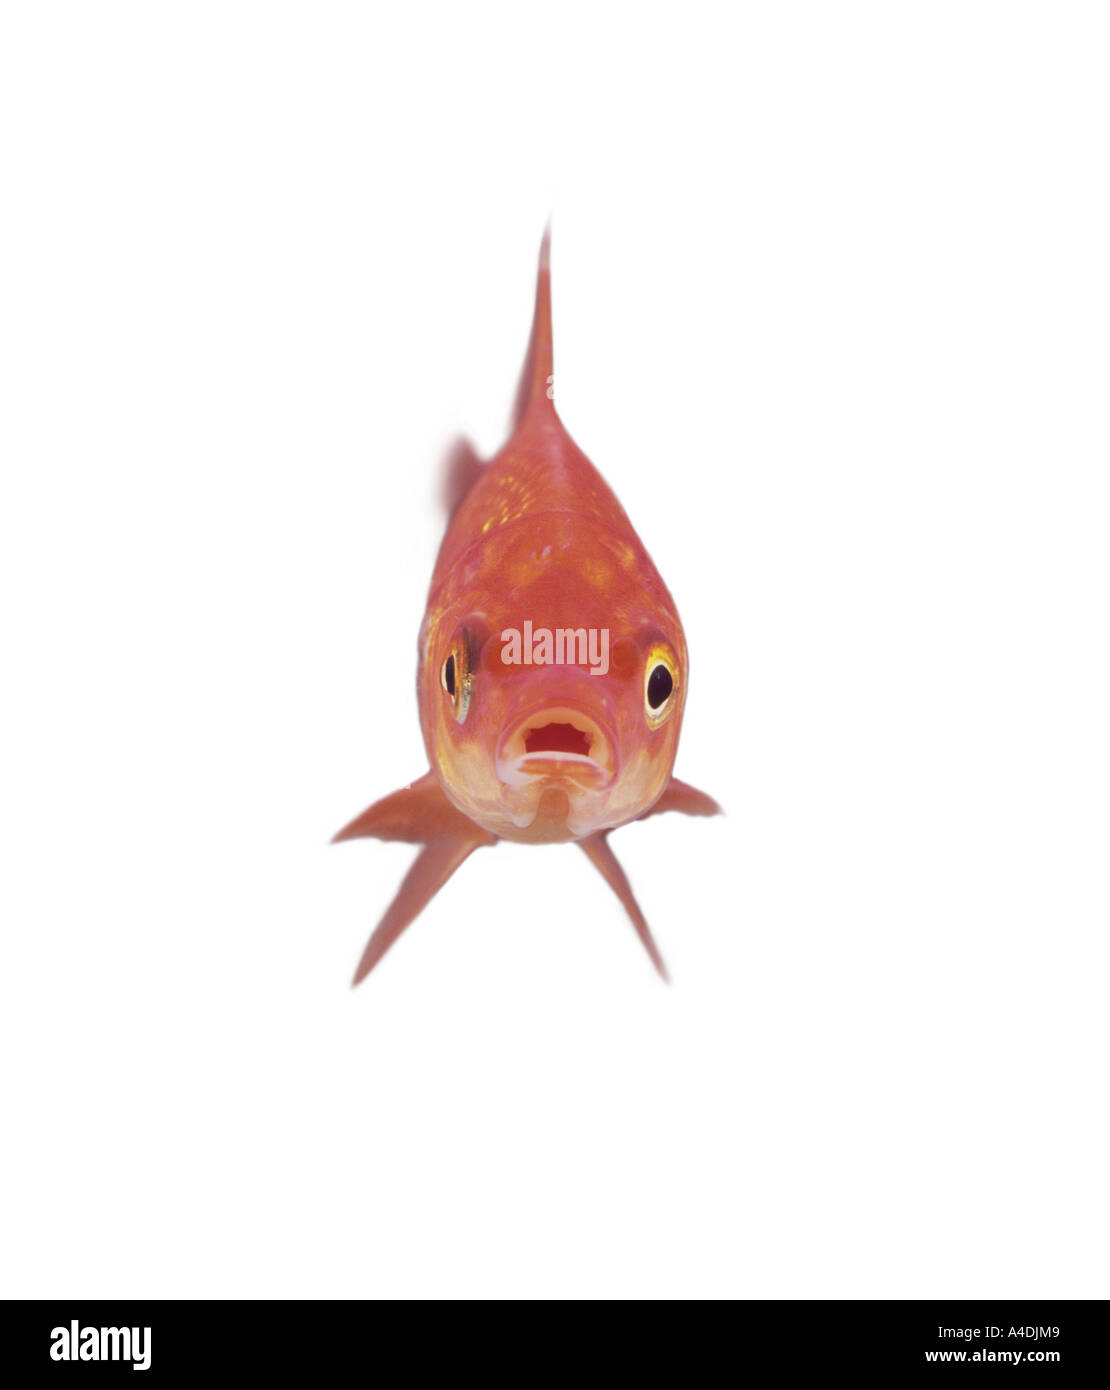 Goldfish, Carassius auratus, head-on. Stock Photo